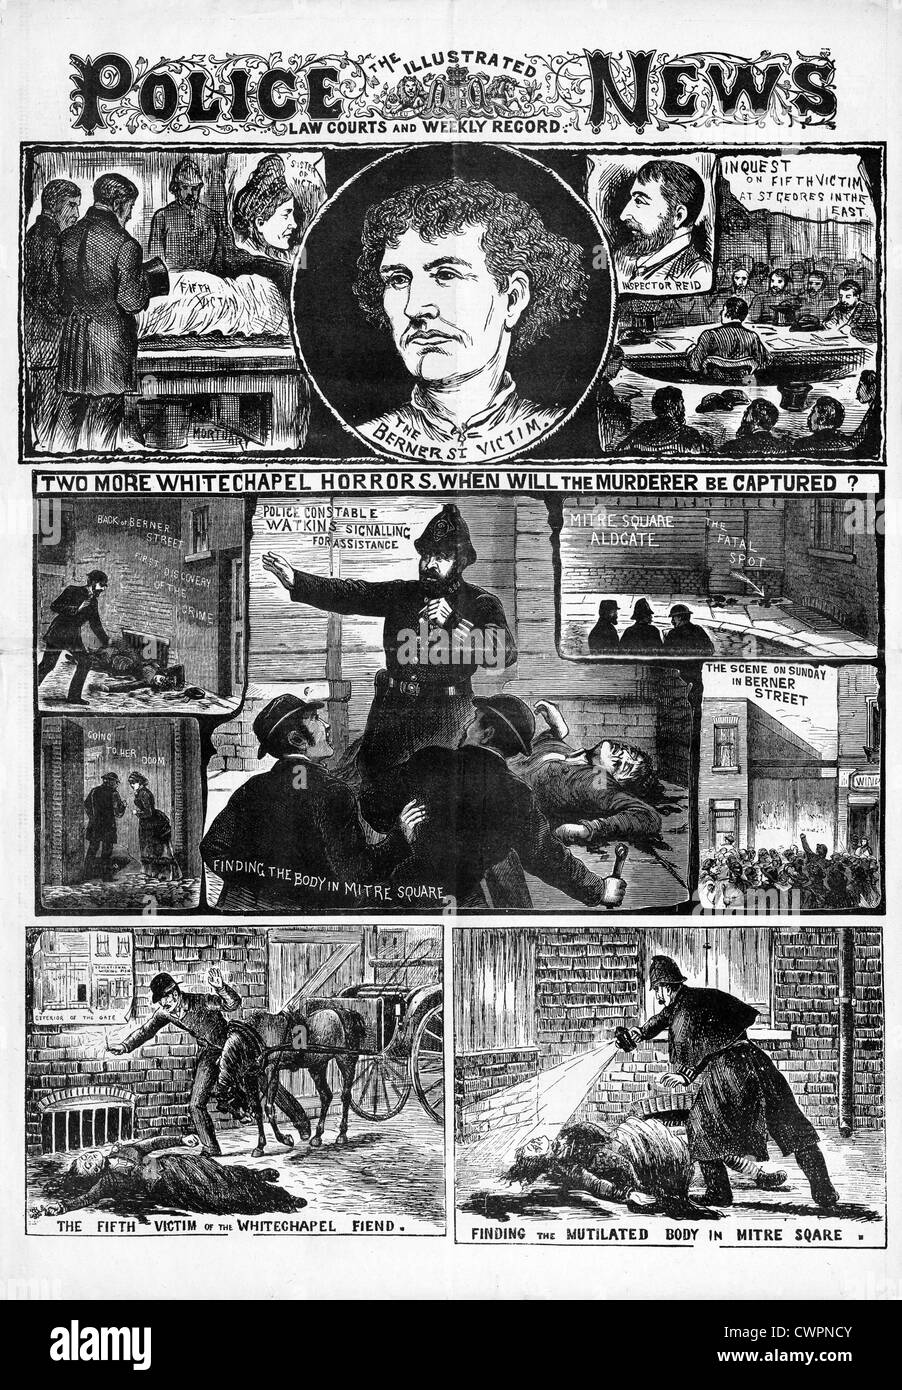 Jack The Ripper, Elizabeth Stride & Catharine Eddowes, The Police News front page reporting the third and fourth - Stock Image